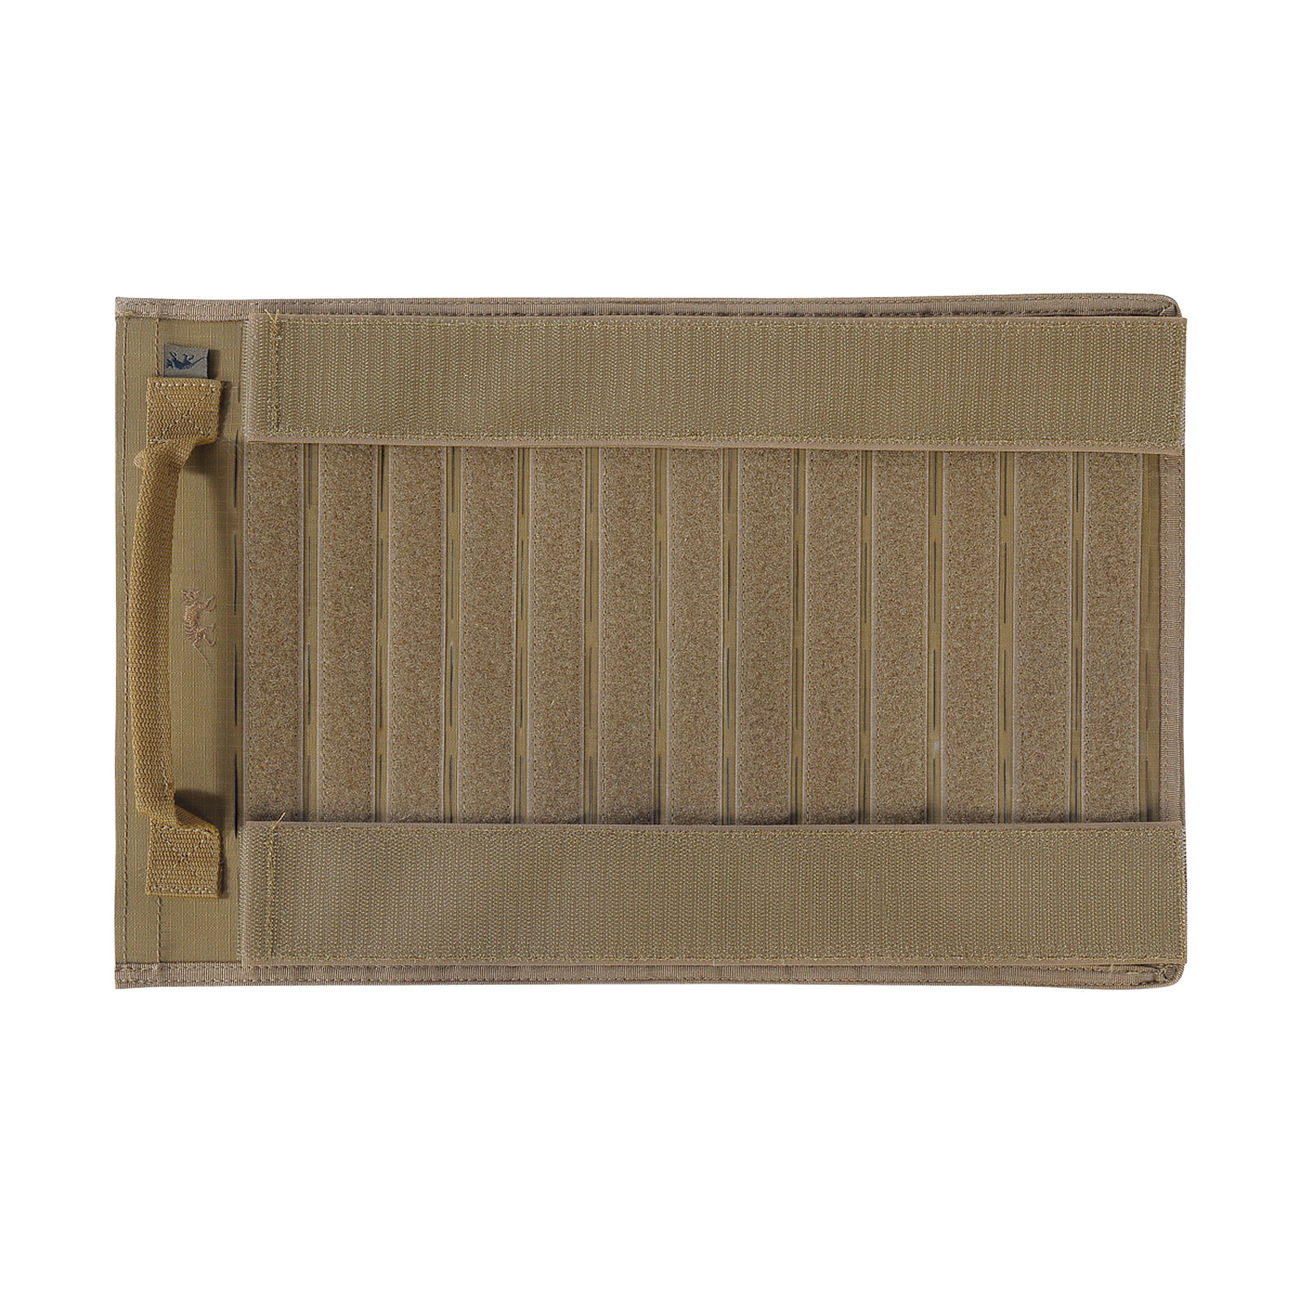 TT Modular Molle Panel coyote brown 0